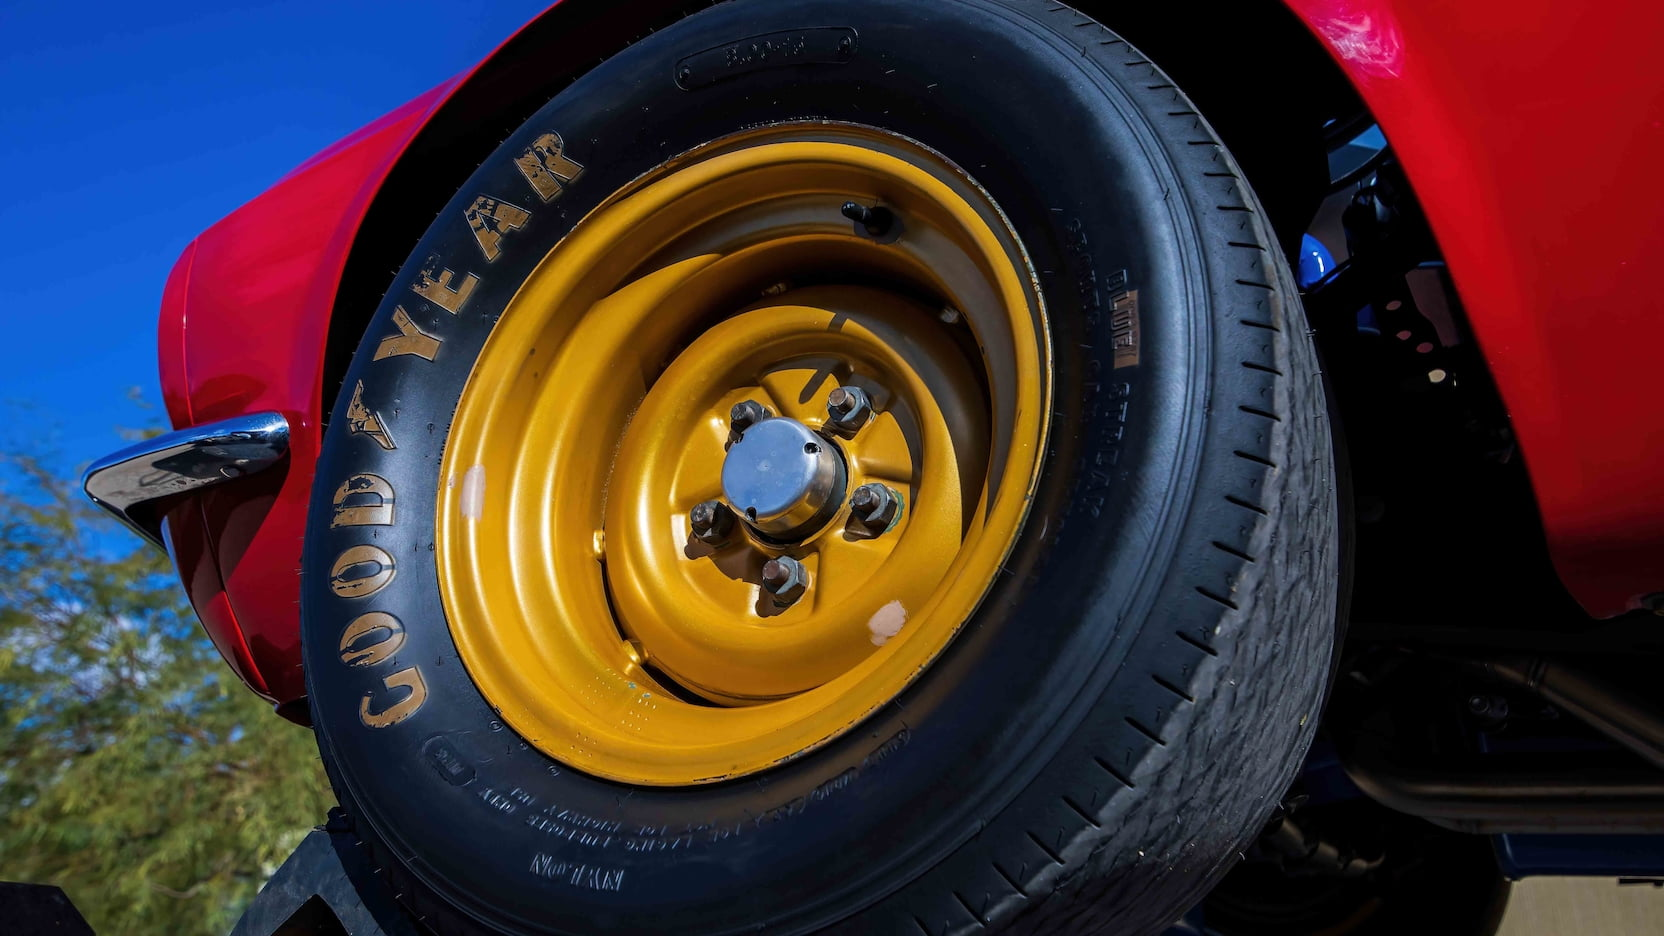 1967 Ford Mustang Holman-Moody Racer front wheel tire